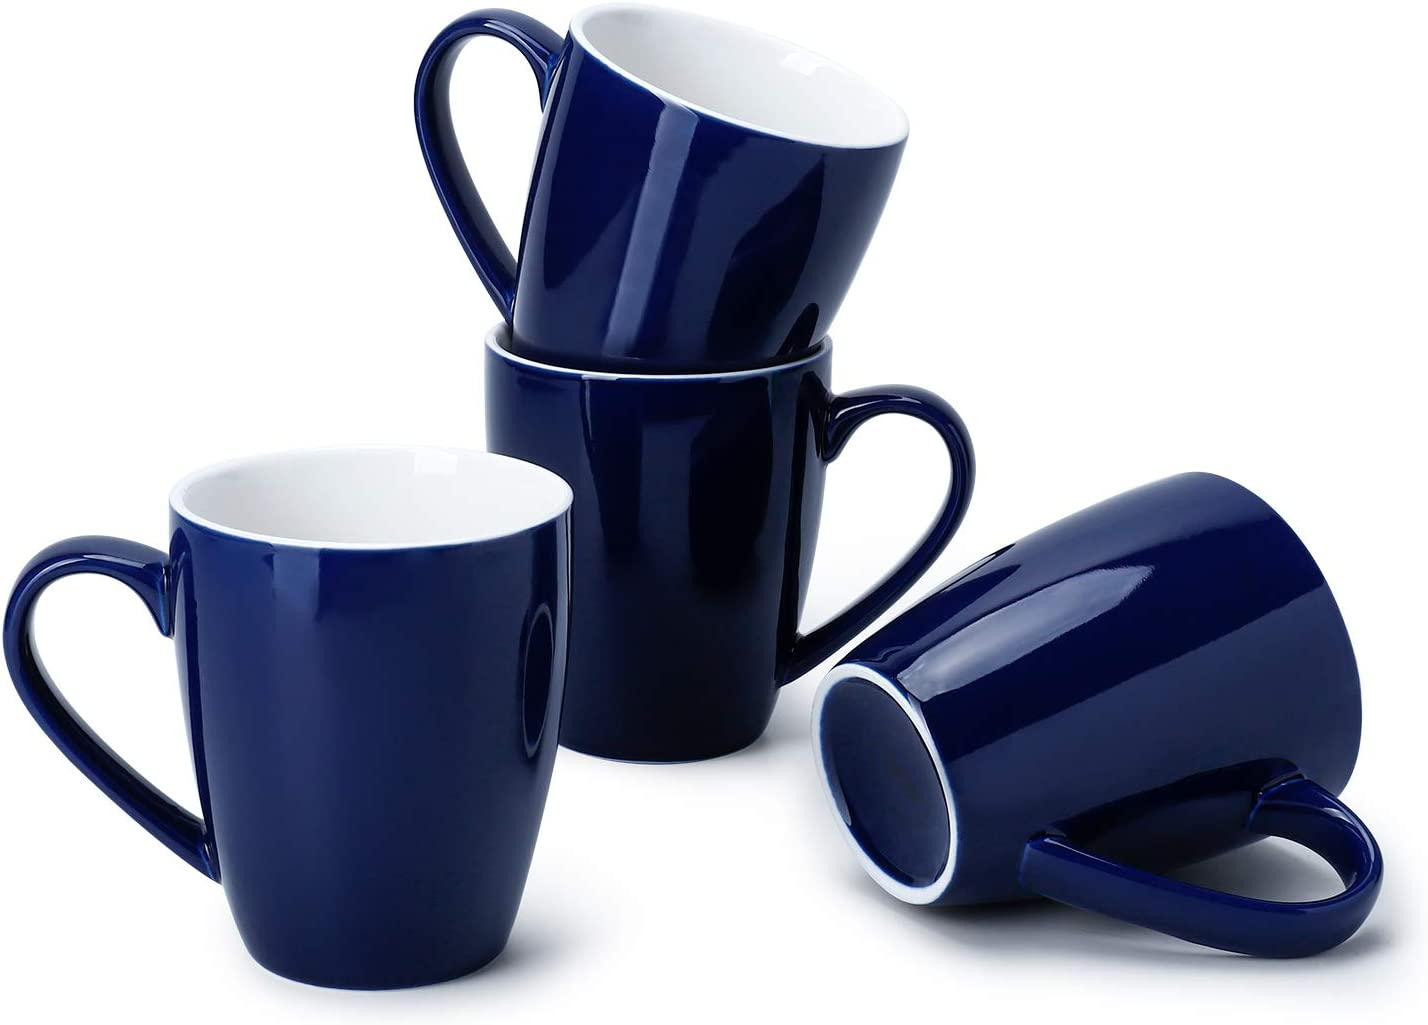 Sweese 601.103 Porcelain Mugs - 16 Ounce (Top to the Rim) for Coffee, Tea, Cocoa, Set of 4, Navy